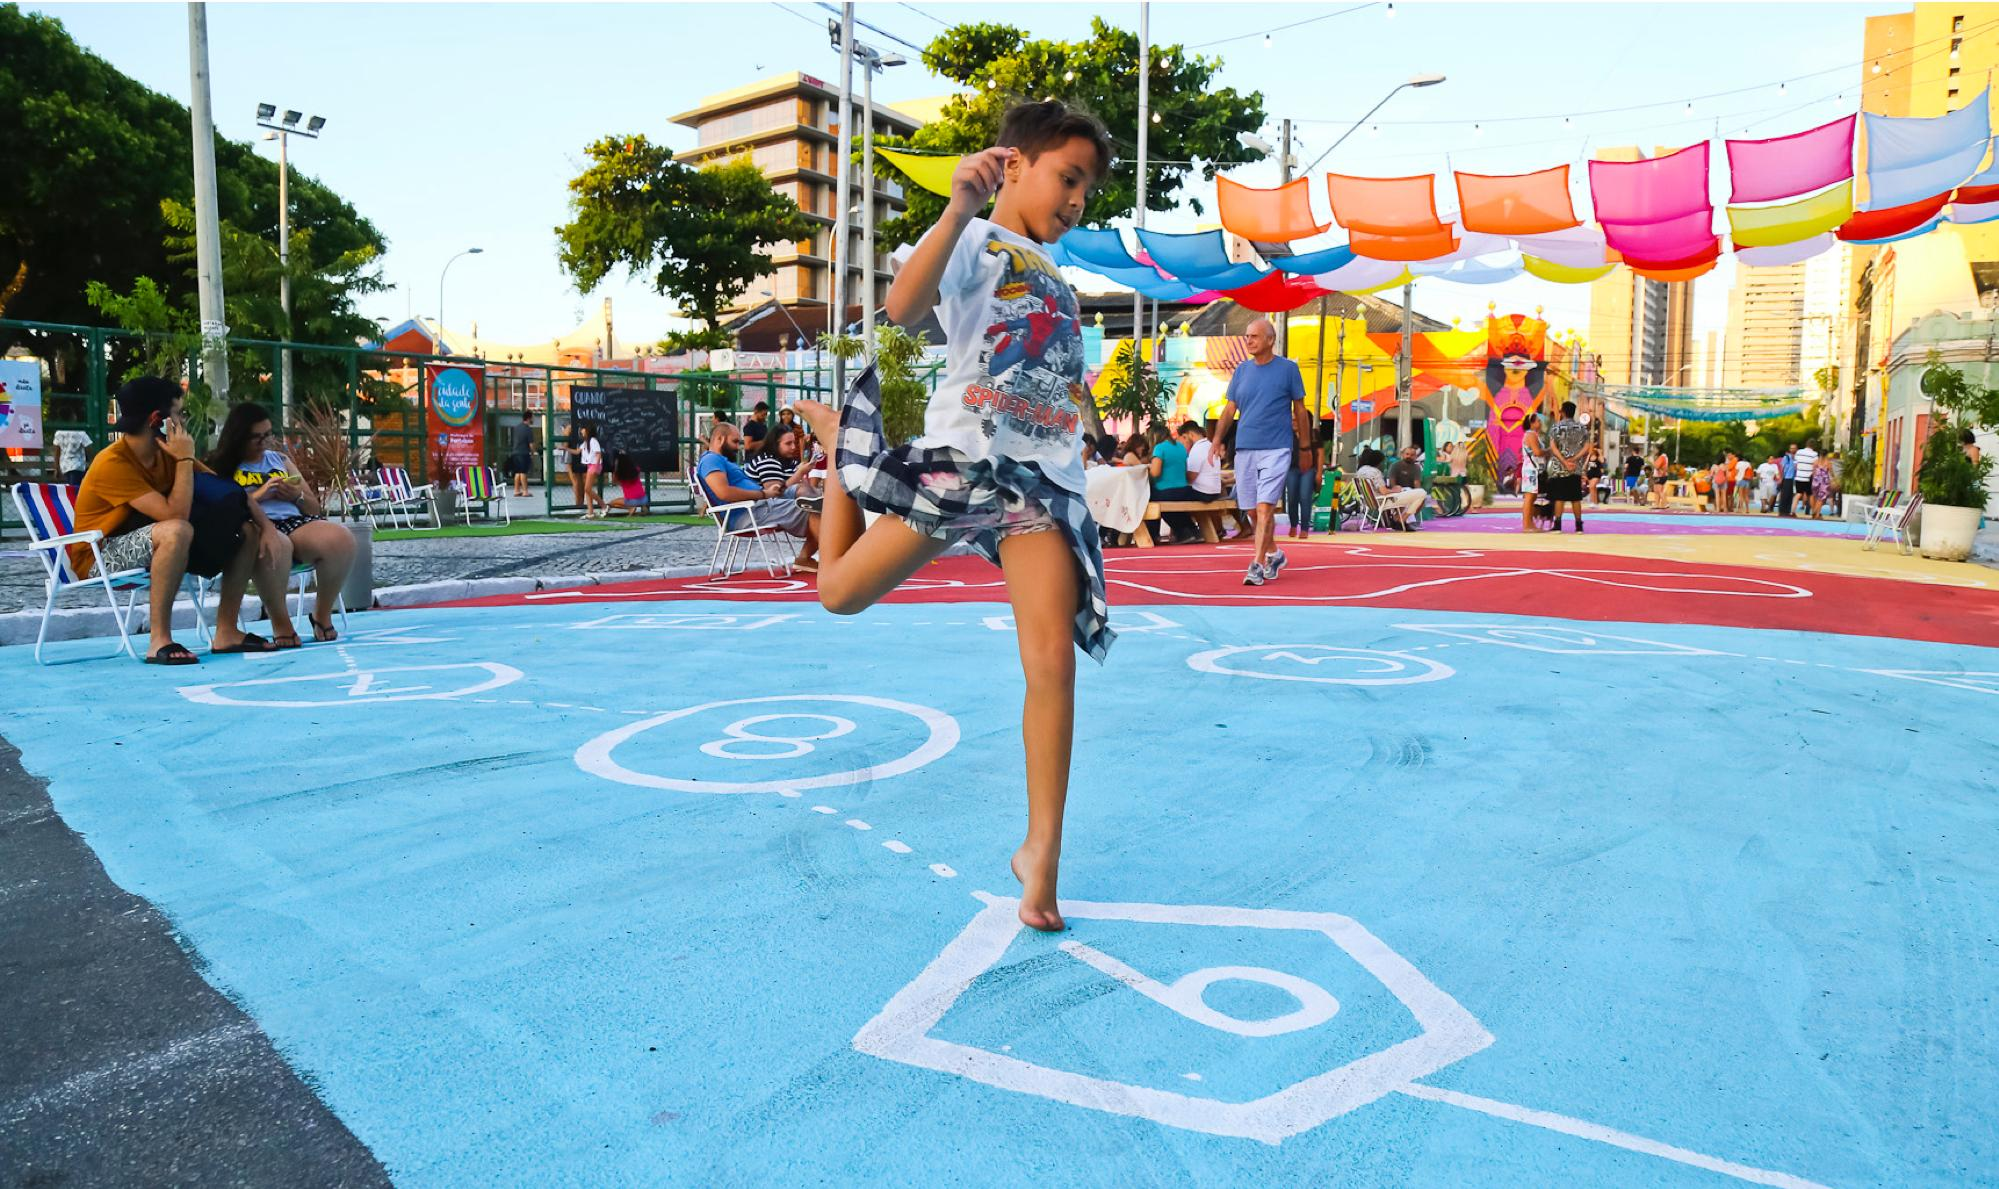 If you design a street that works for kids, you design a street that works for everyone. Designing Streets for Kids shows the way forward with designs that are safe accessible, healthy and inspiring. #NACTO2019 https://t.co/bsNtWsWa1n